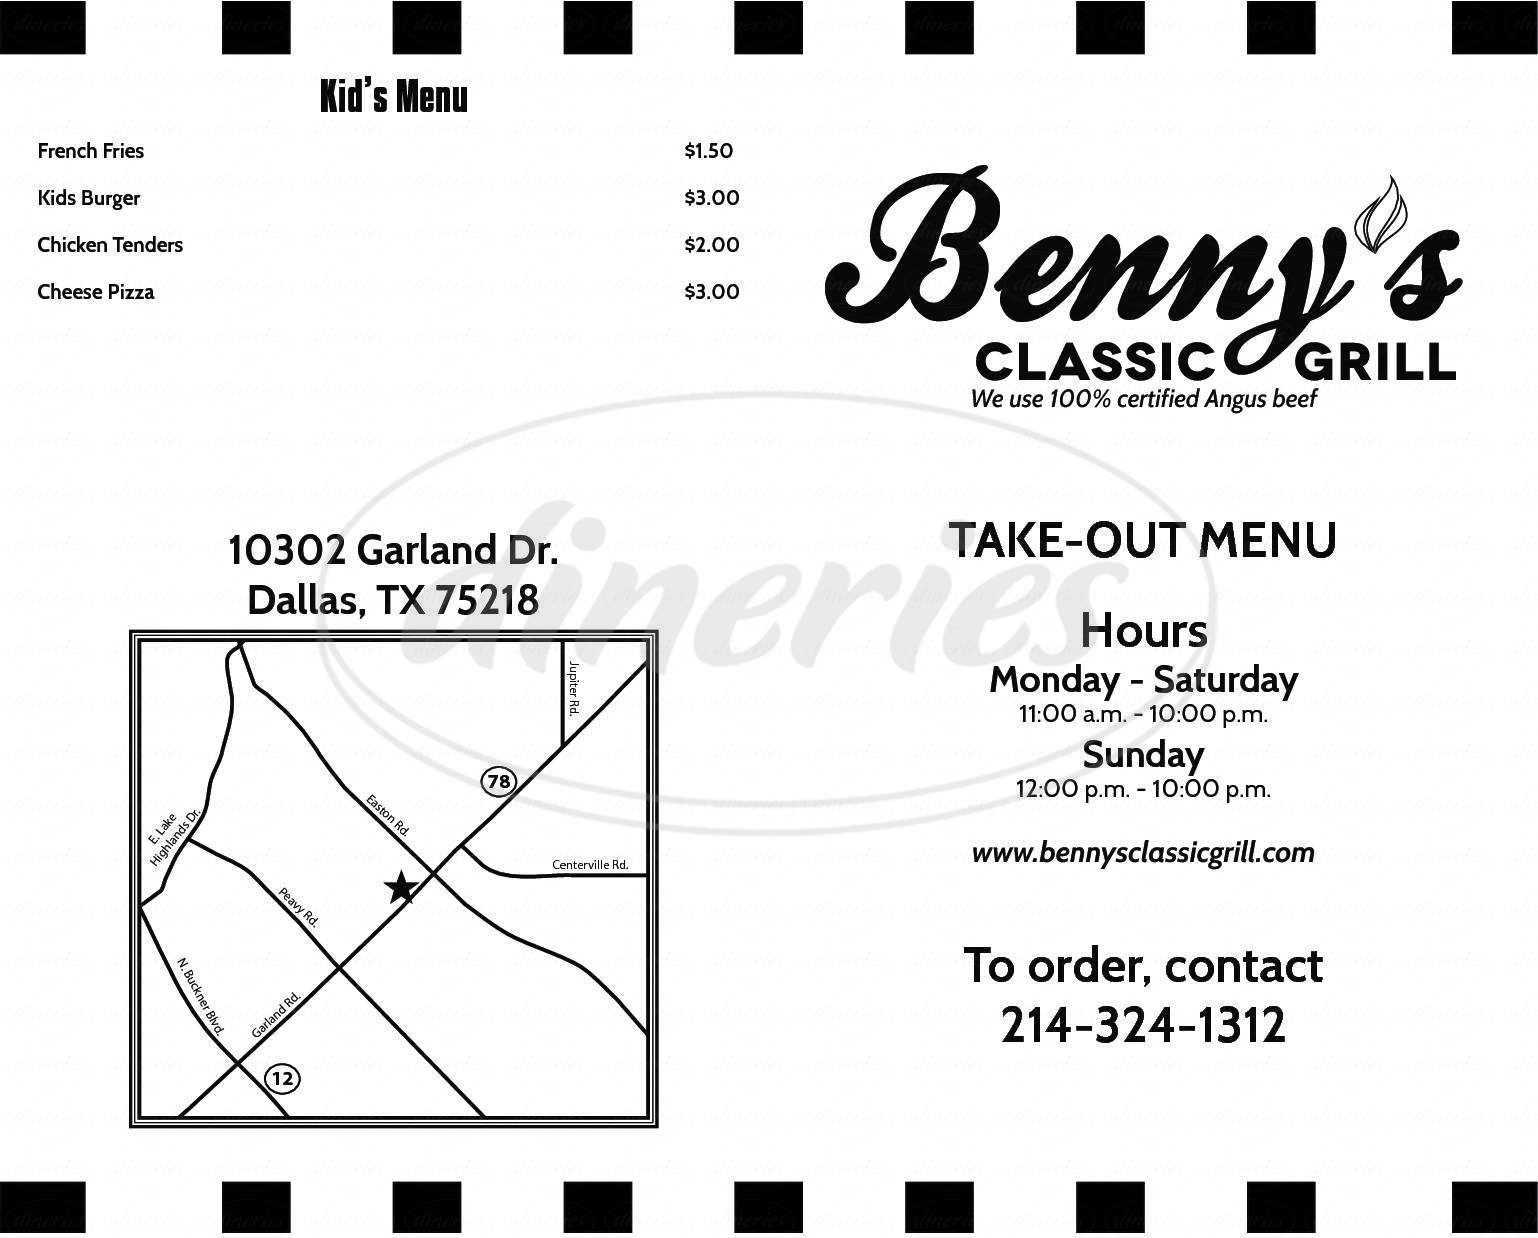 menu for Bennys Classic Grill